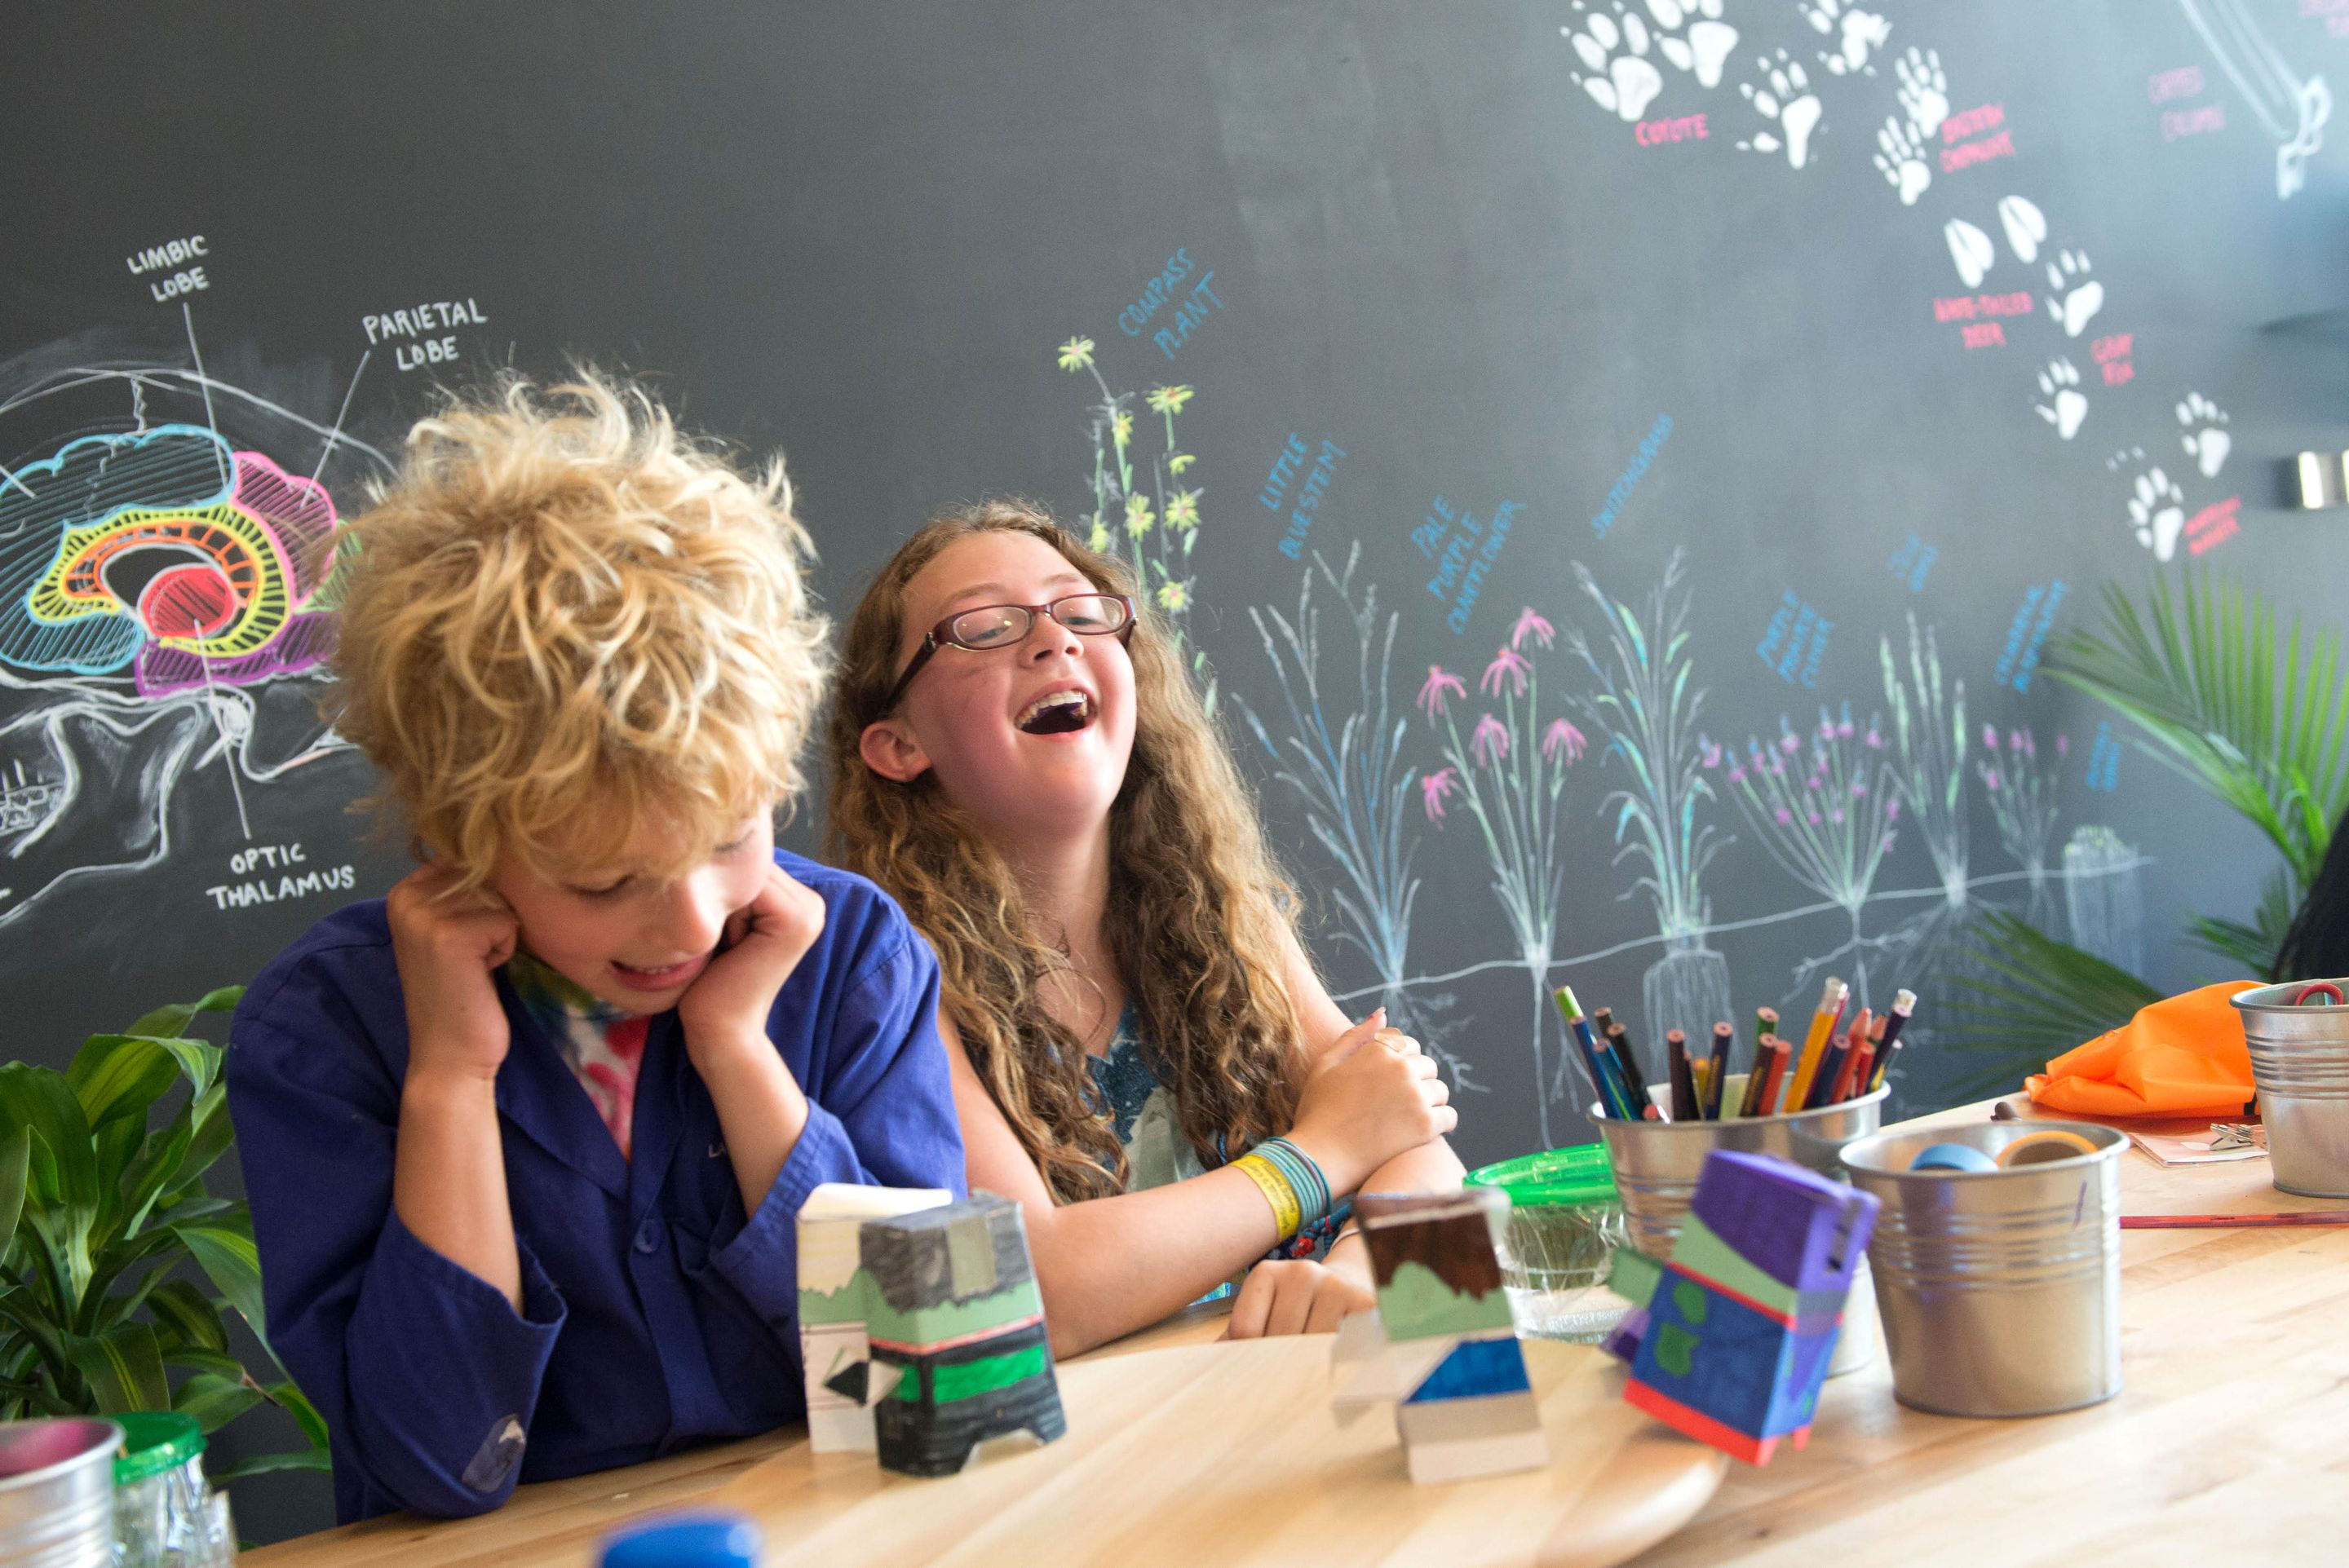 Two students laughing at a table while working on a science project.